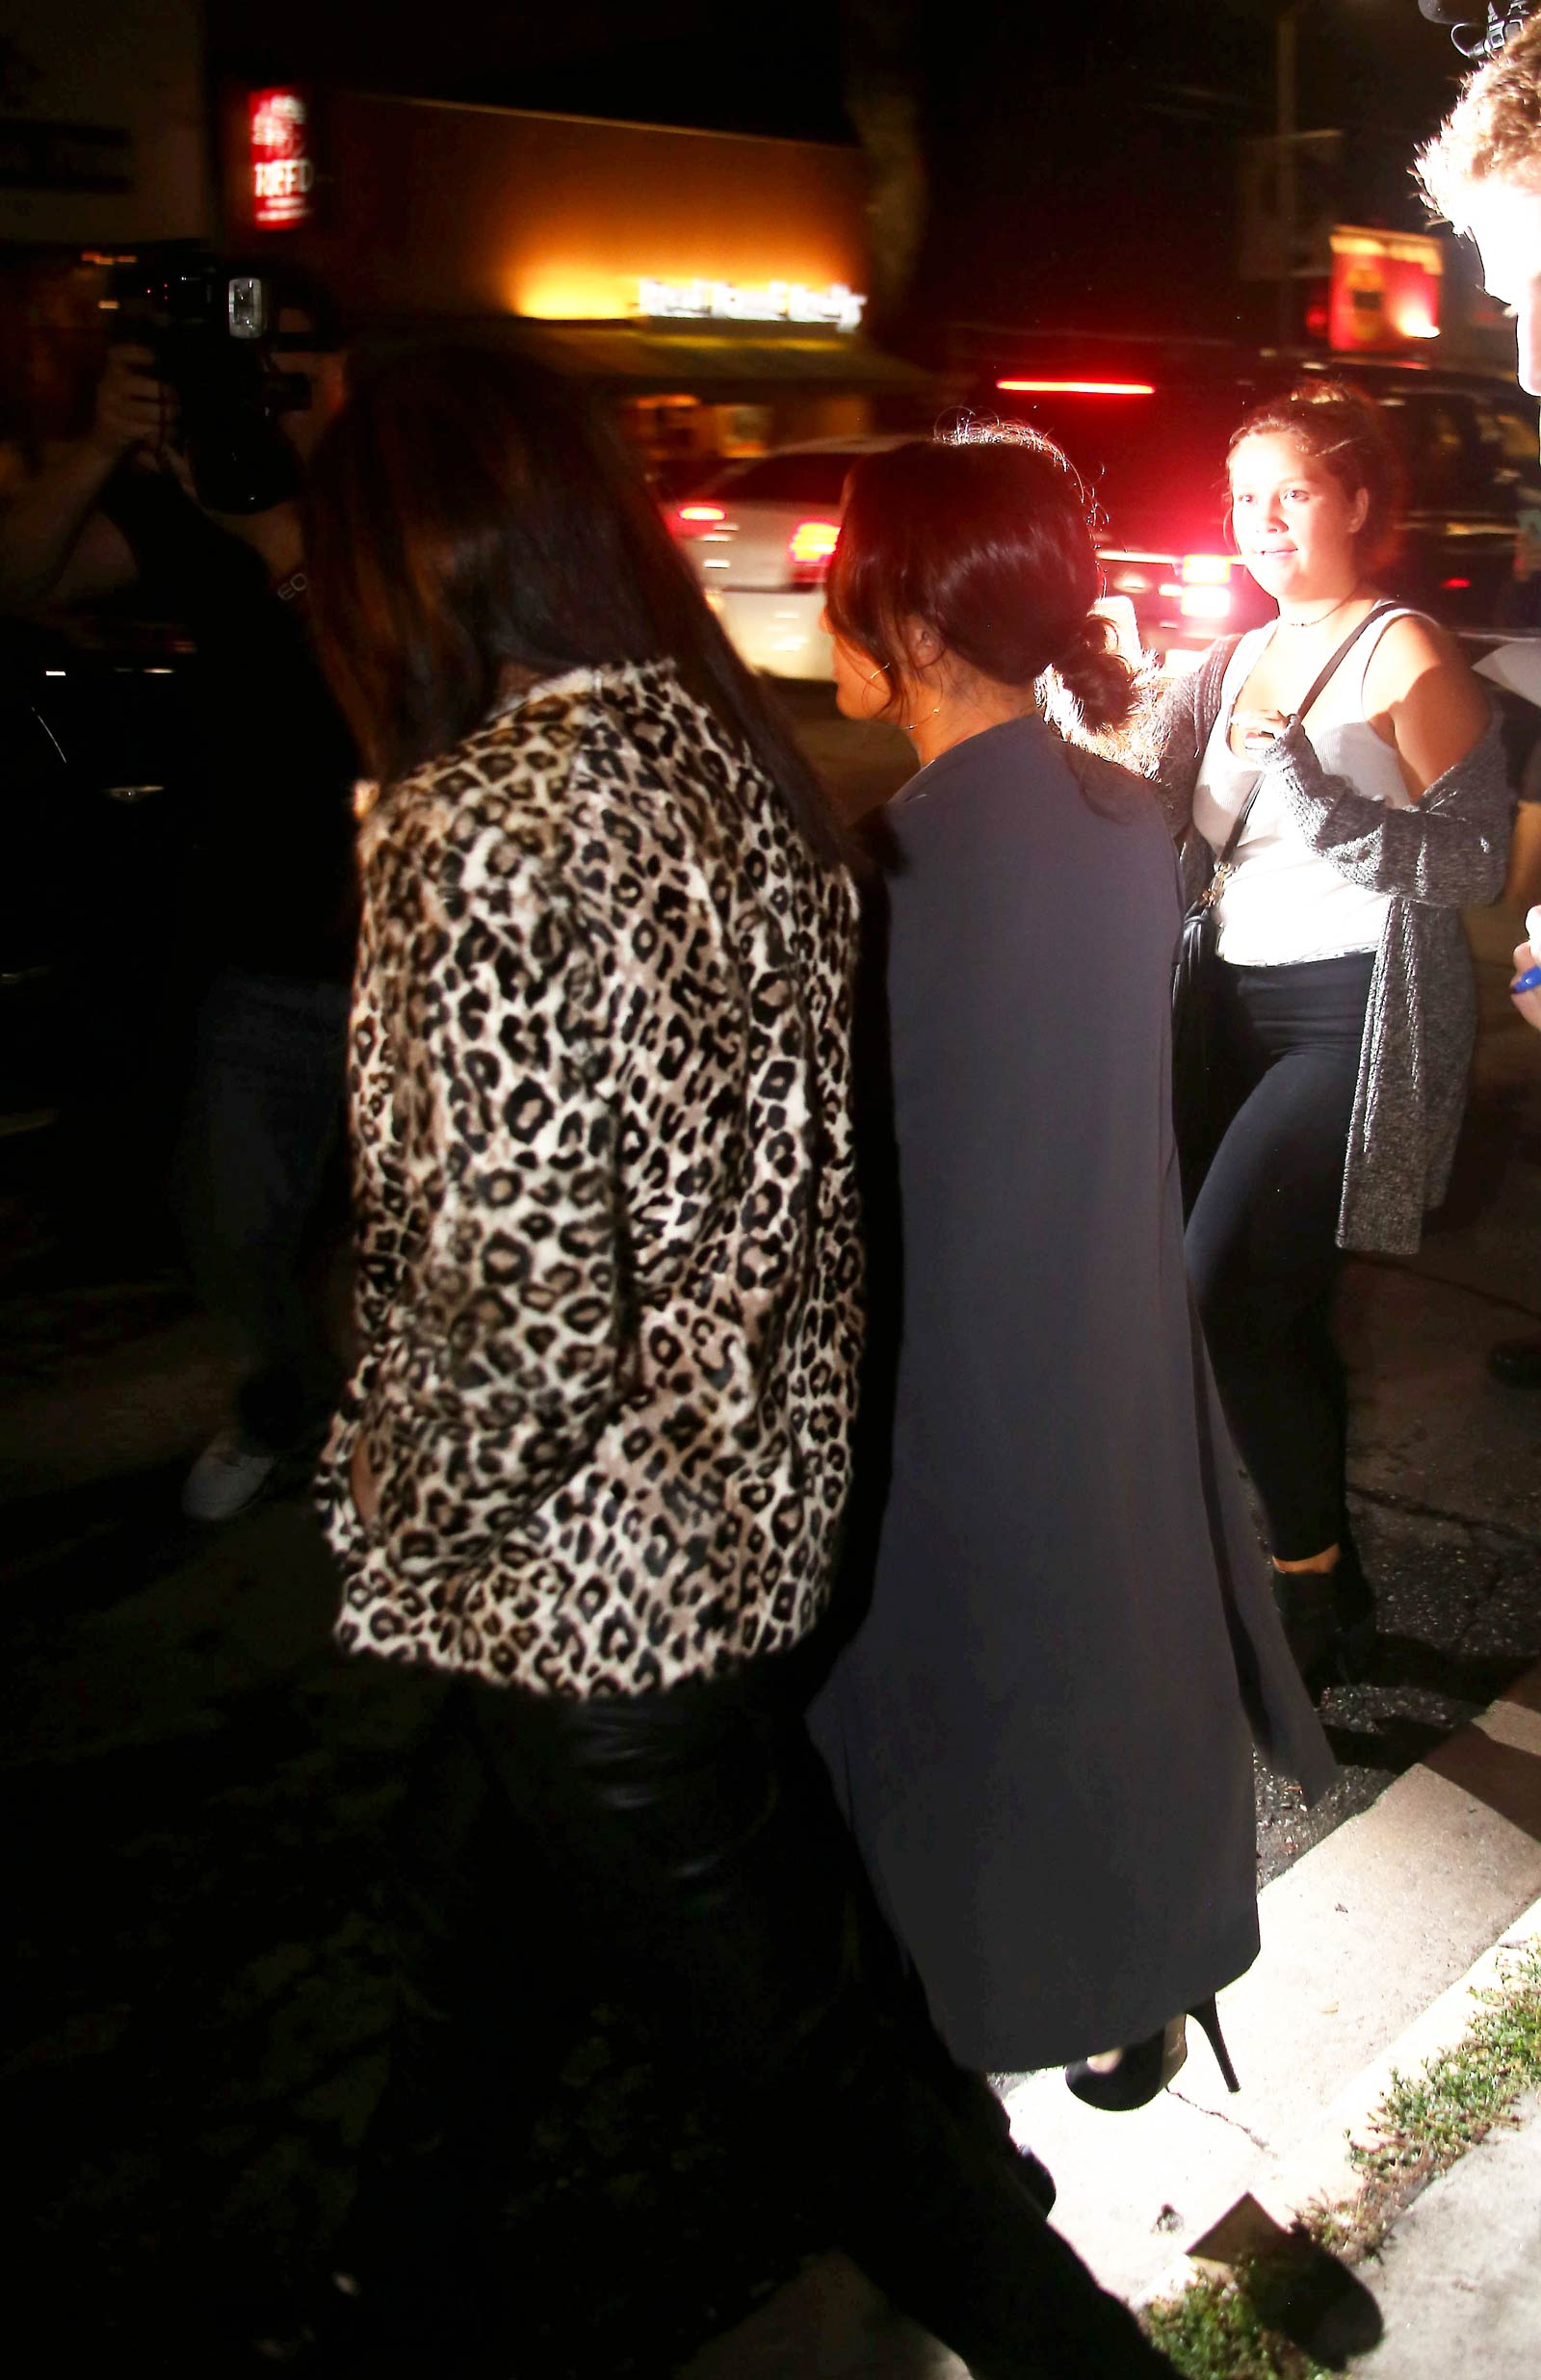 Selena Gomez & Francia Raisa leaving The Nice Guy Restaurant